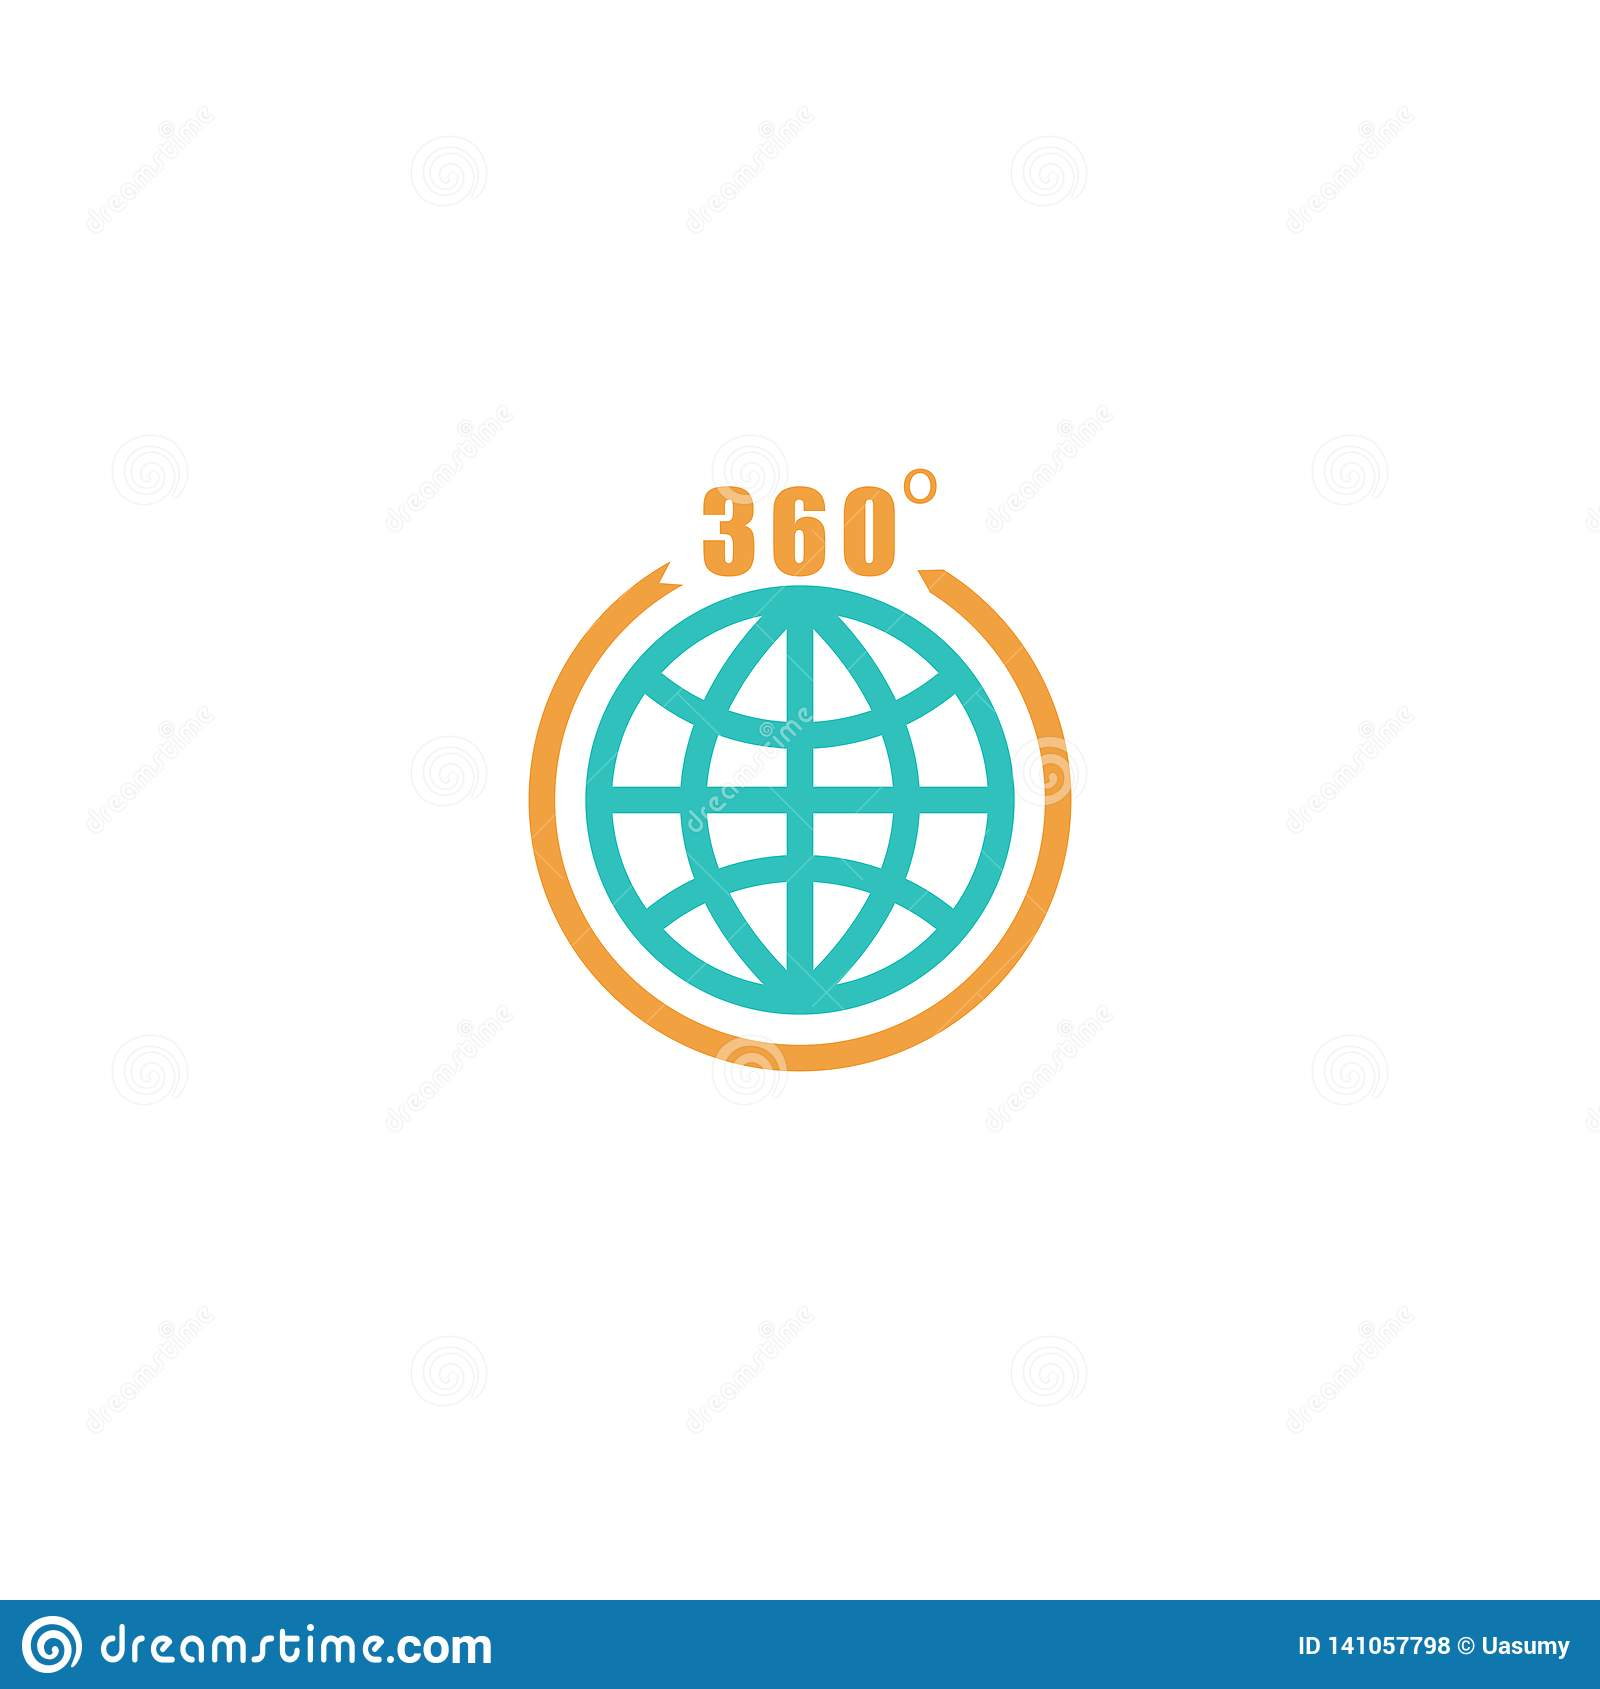 Travel circle mockup logo, globe arrow with 360 degrees, tourism icon